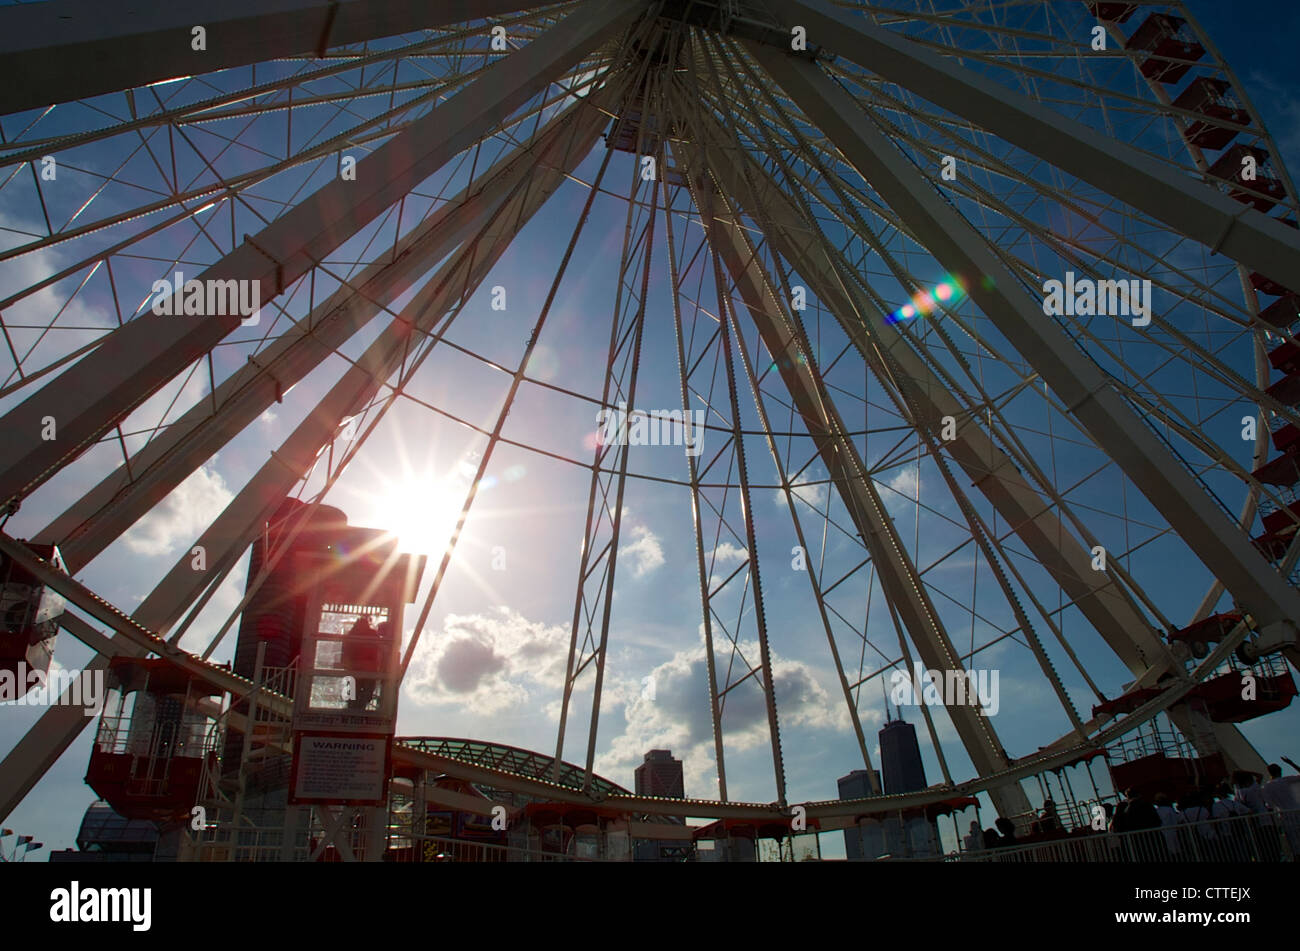 Ferris Wheel Operator Is Silhouetted At The Navy Pier Ferris Wheel In Stock Photo Alamy